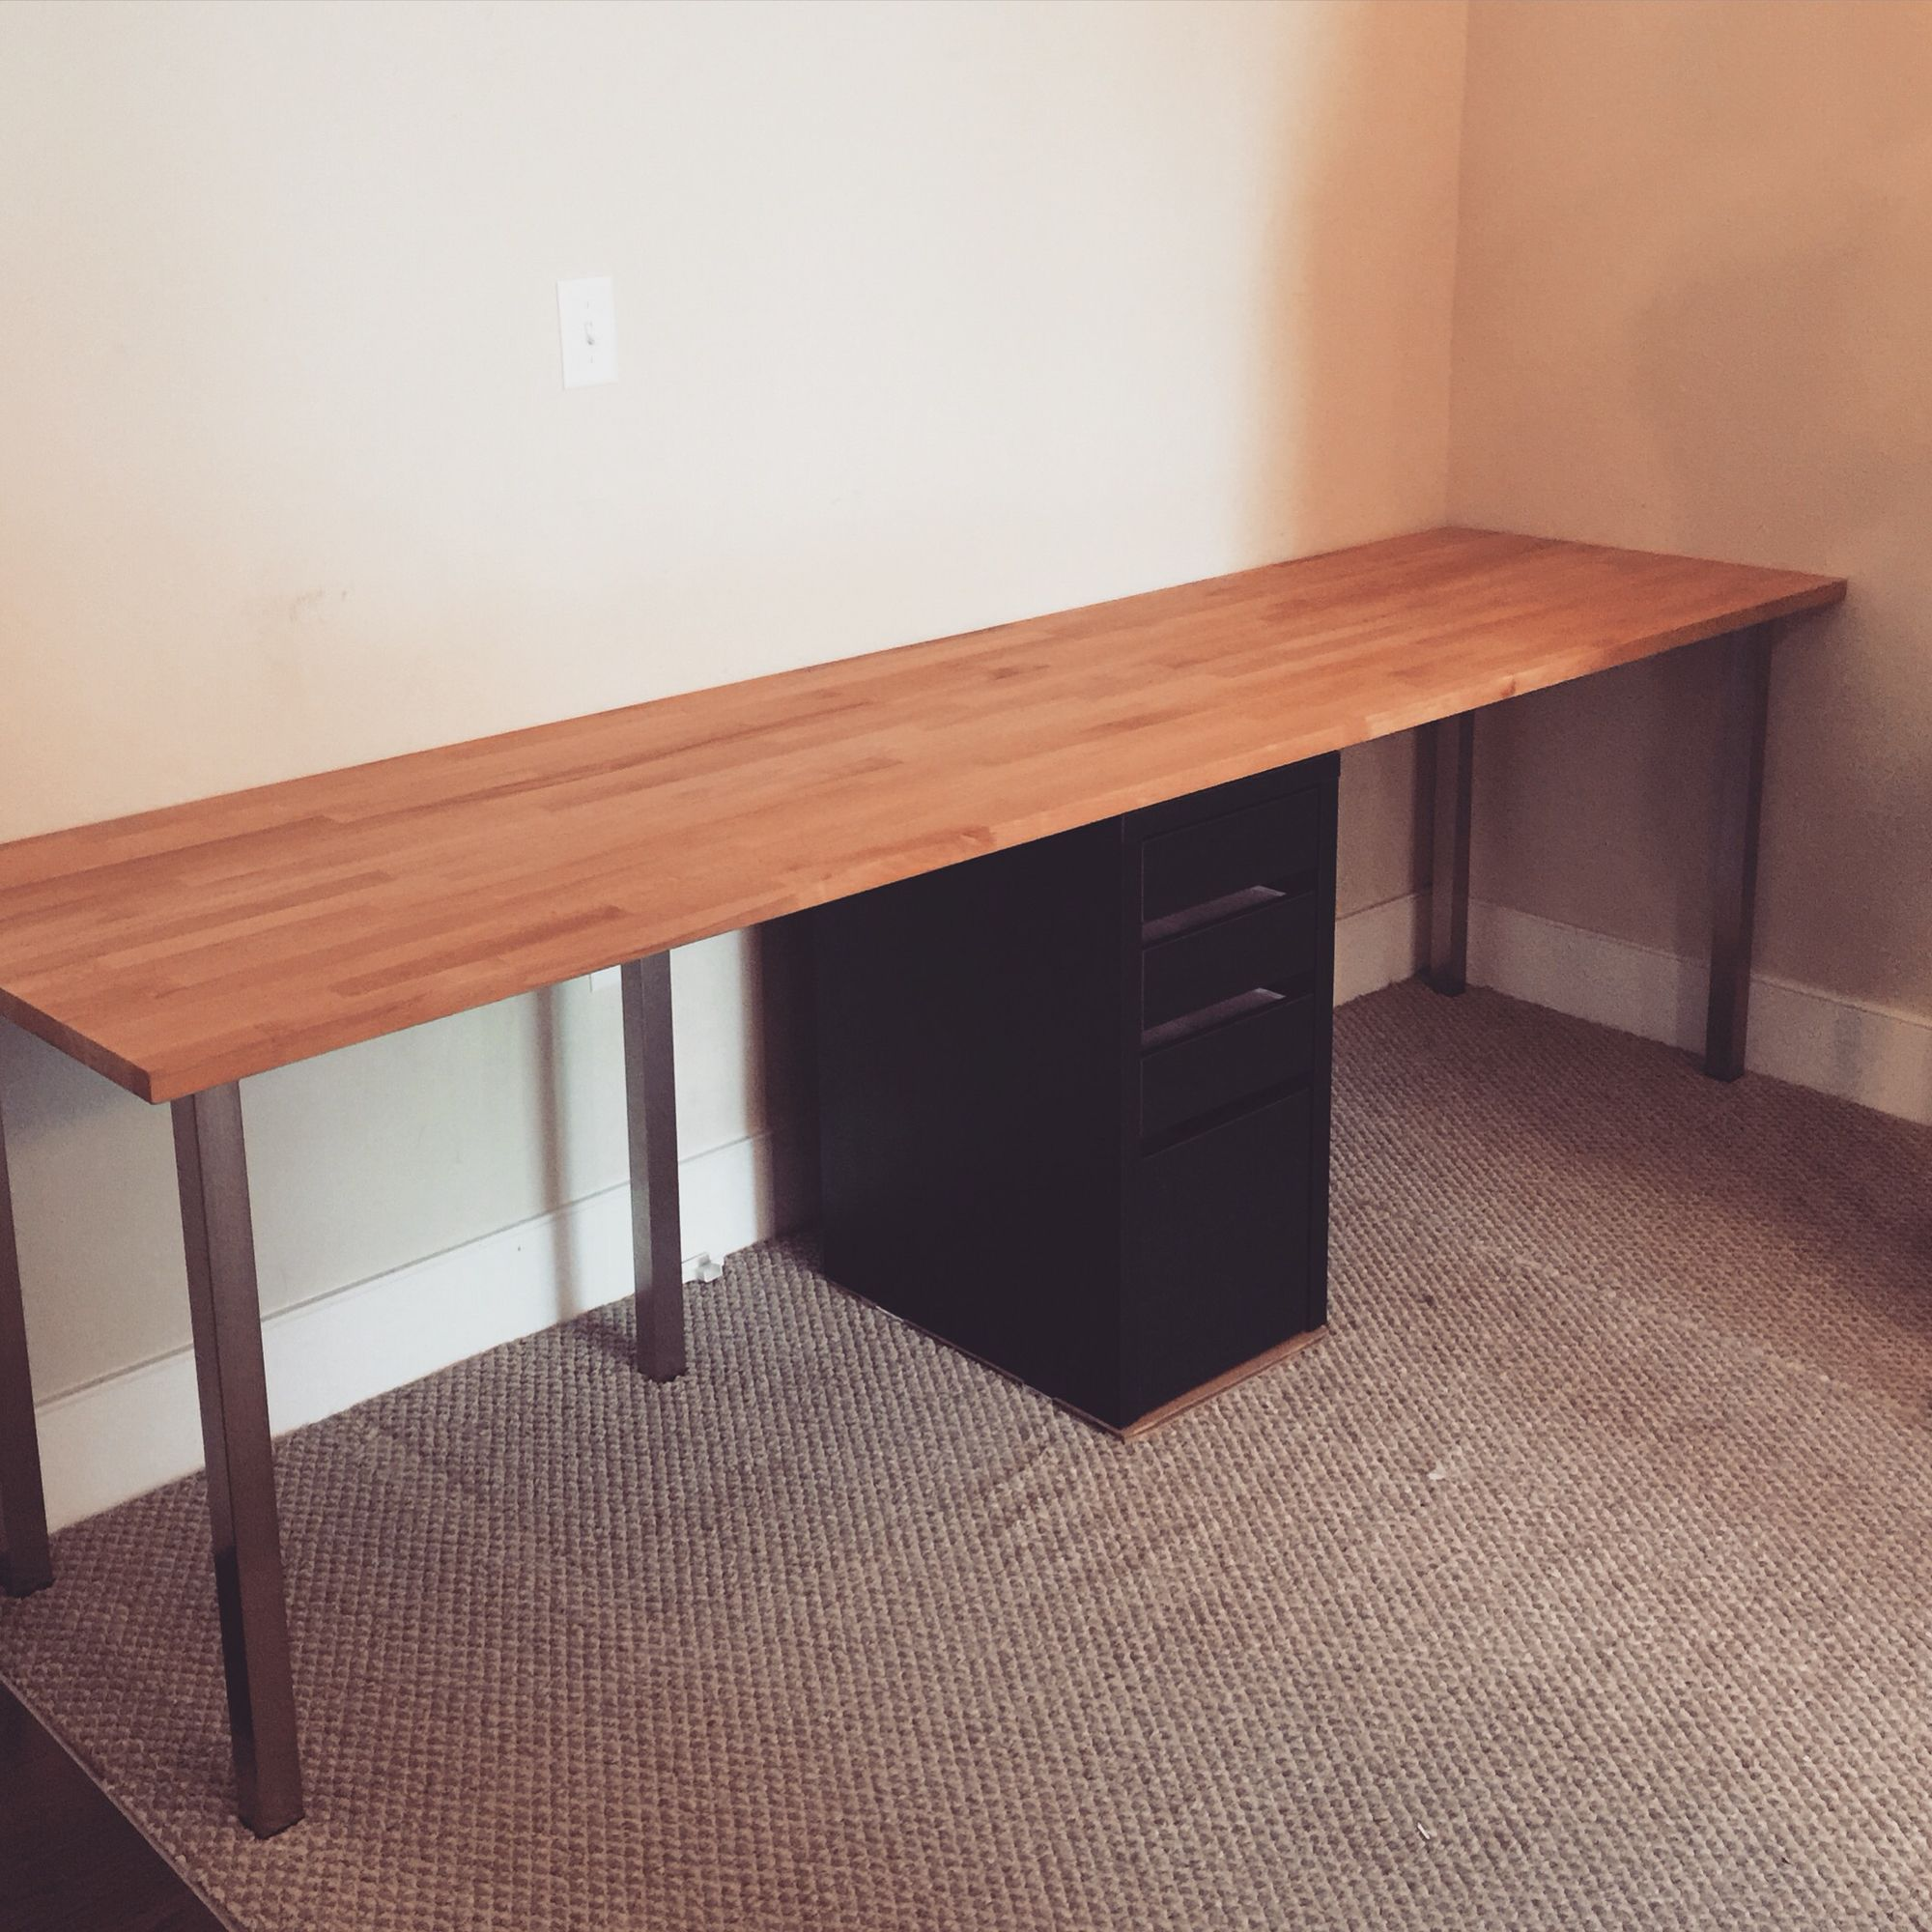 Countertop Desk : ikea desk diy desk desk ideas office ideas drawer unit extra bedroom ...